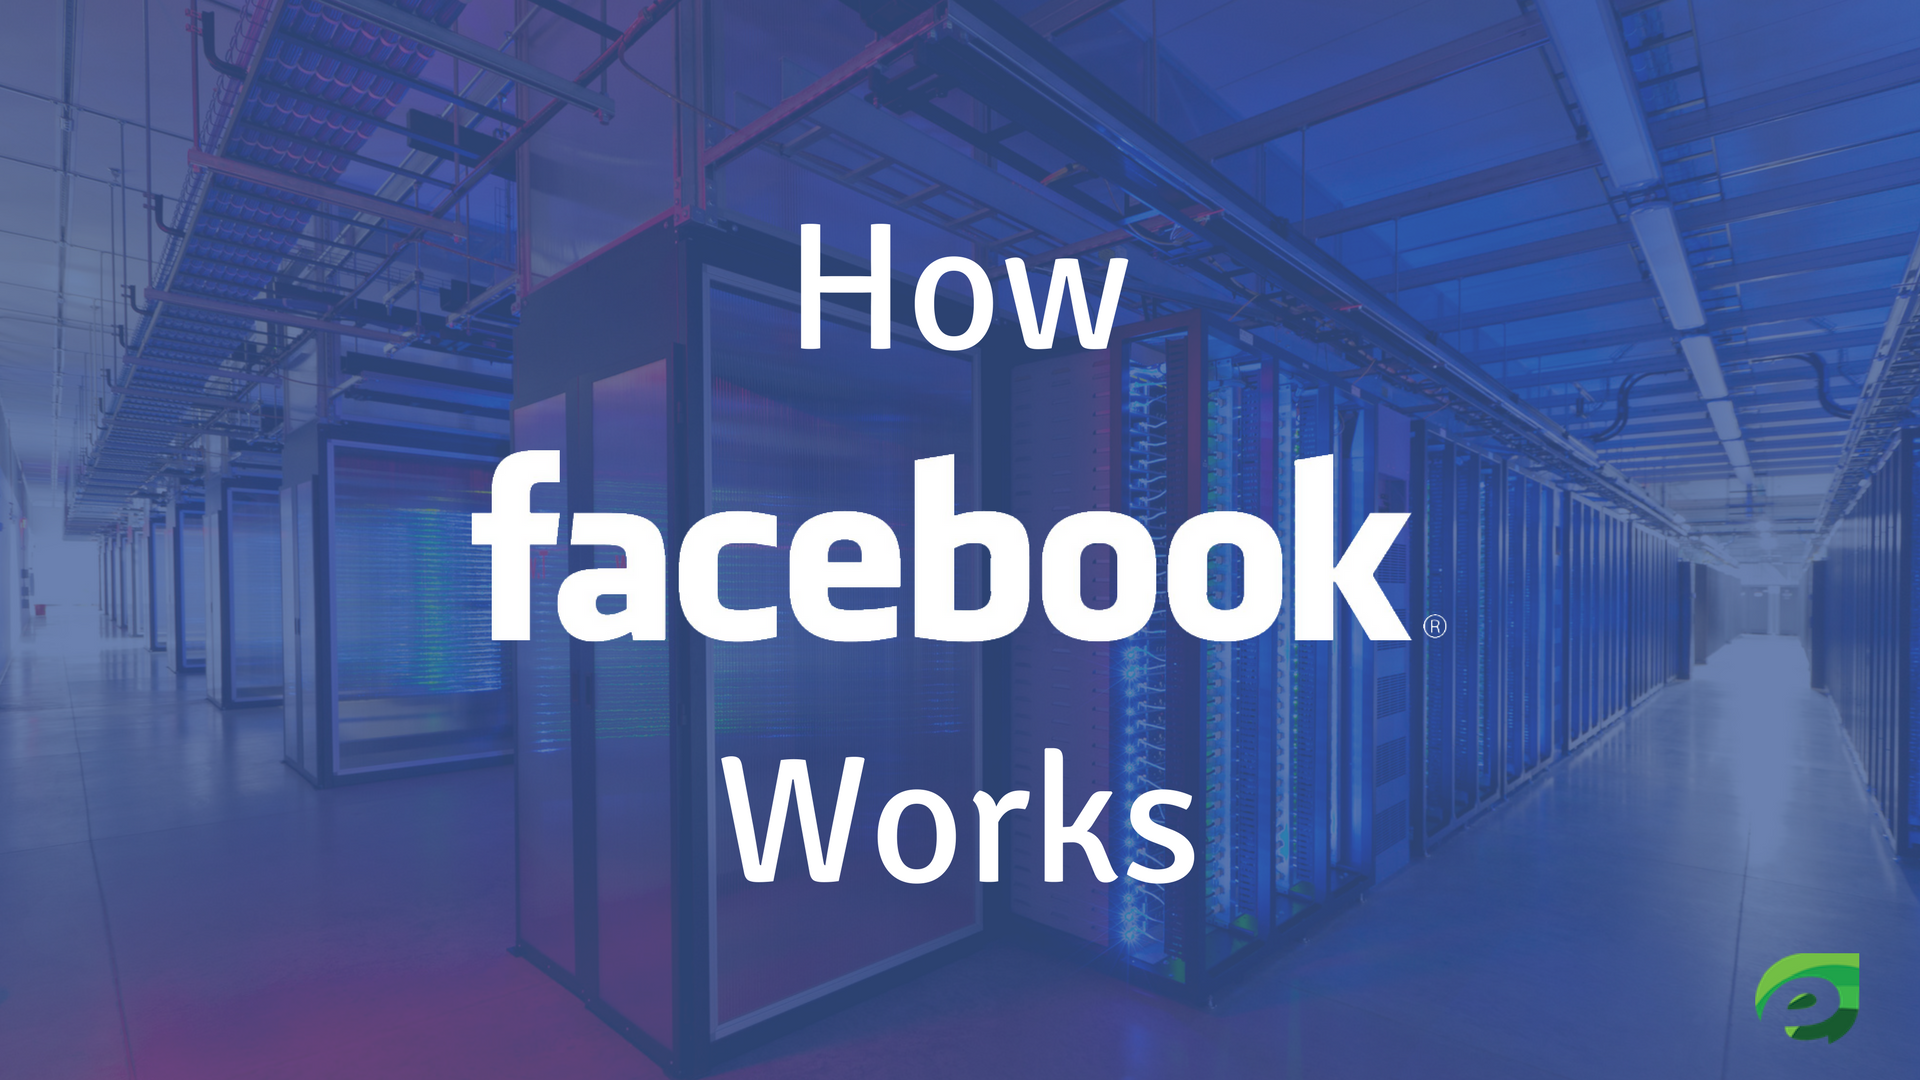 Featured image - How Facebook Works